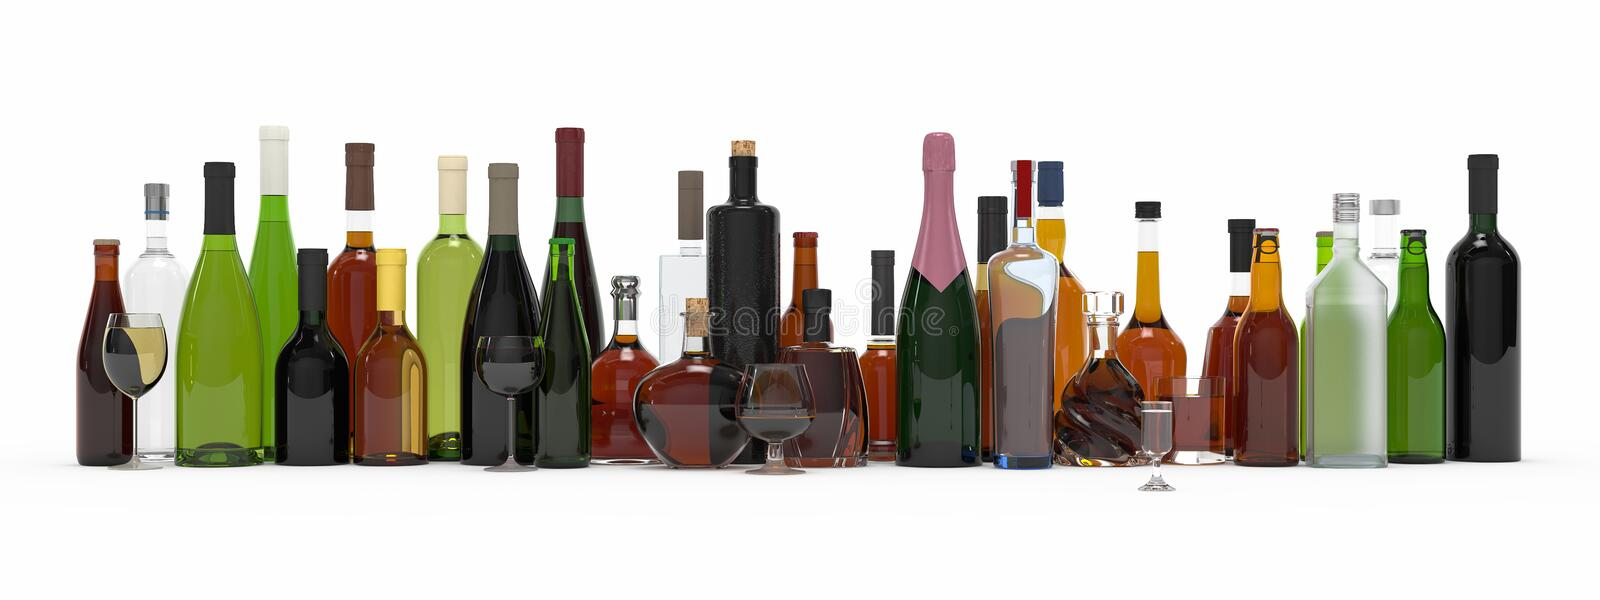 Collection of alcoholic bottles isolated 3d rendering stock illustration